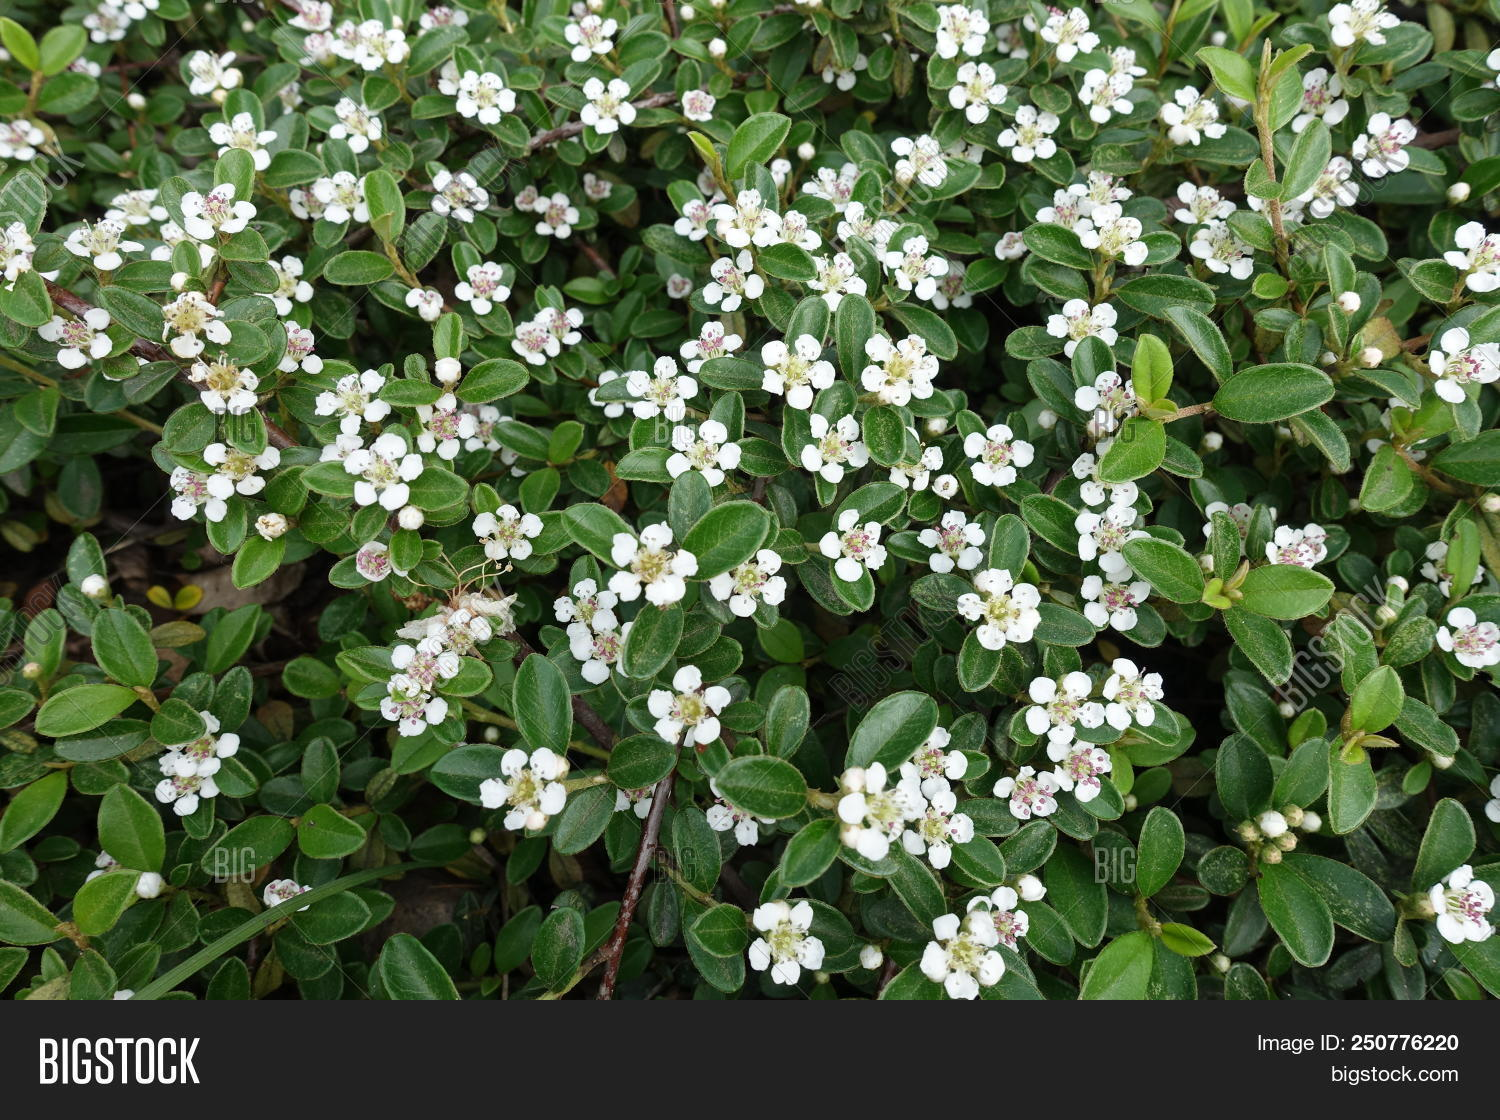 Small White Flowers Image Photo Free Trial Bigstock